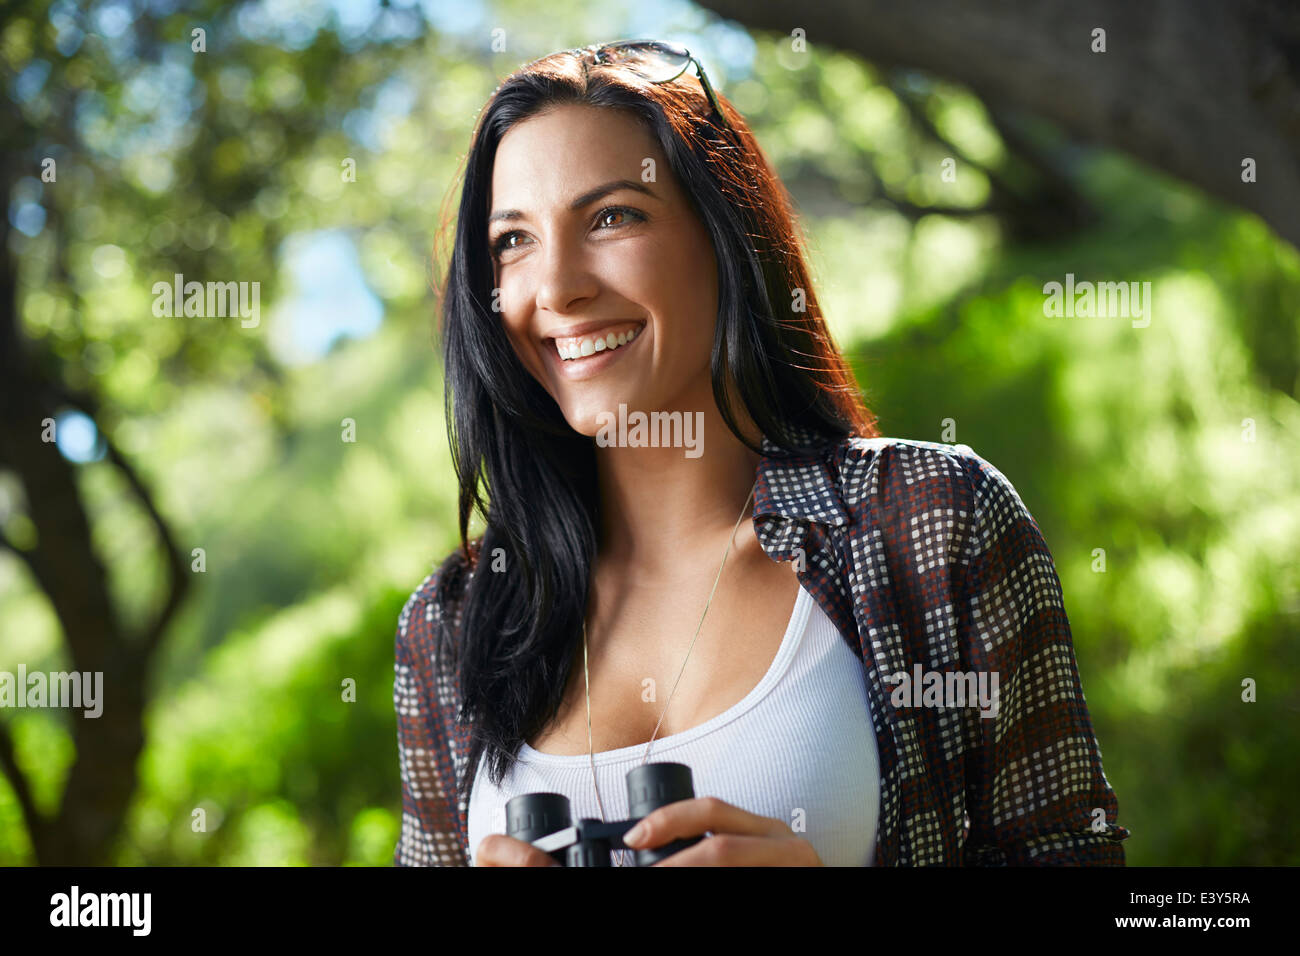 Mid adult woman birdwatcher in forest - Stock Image